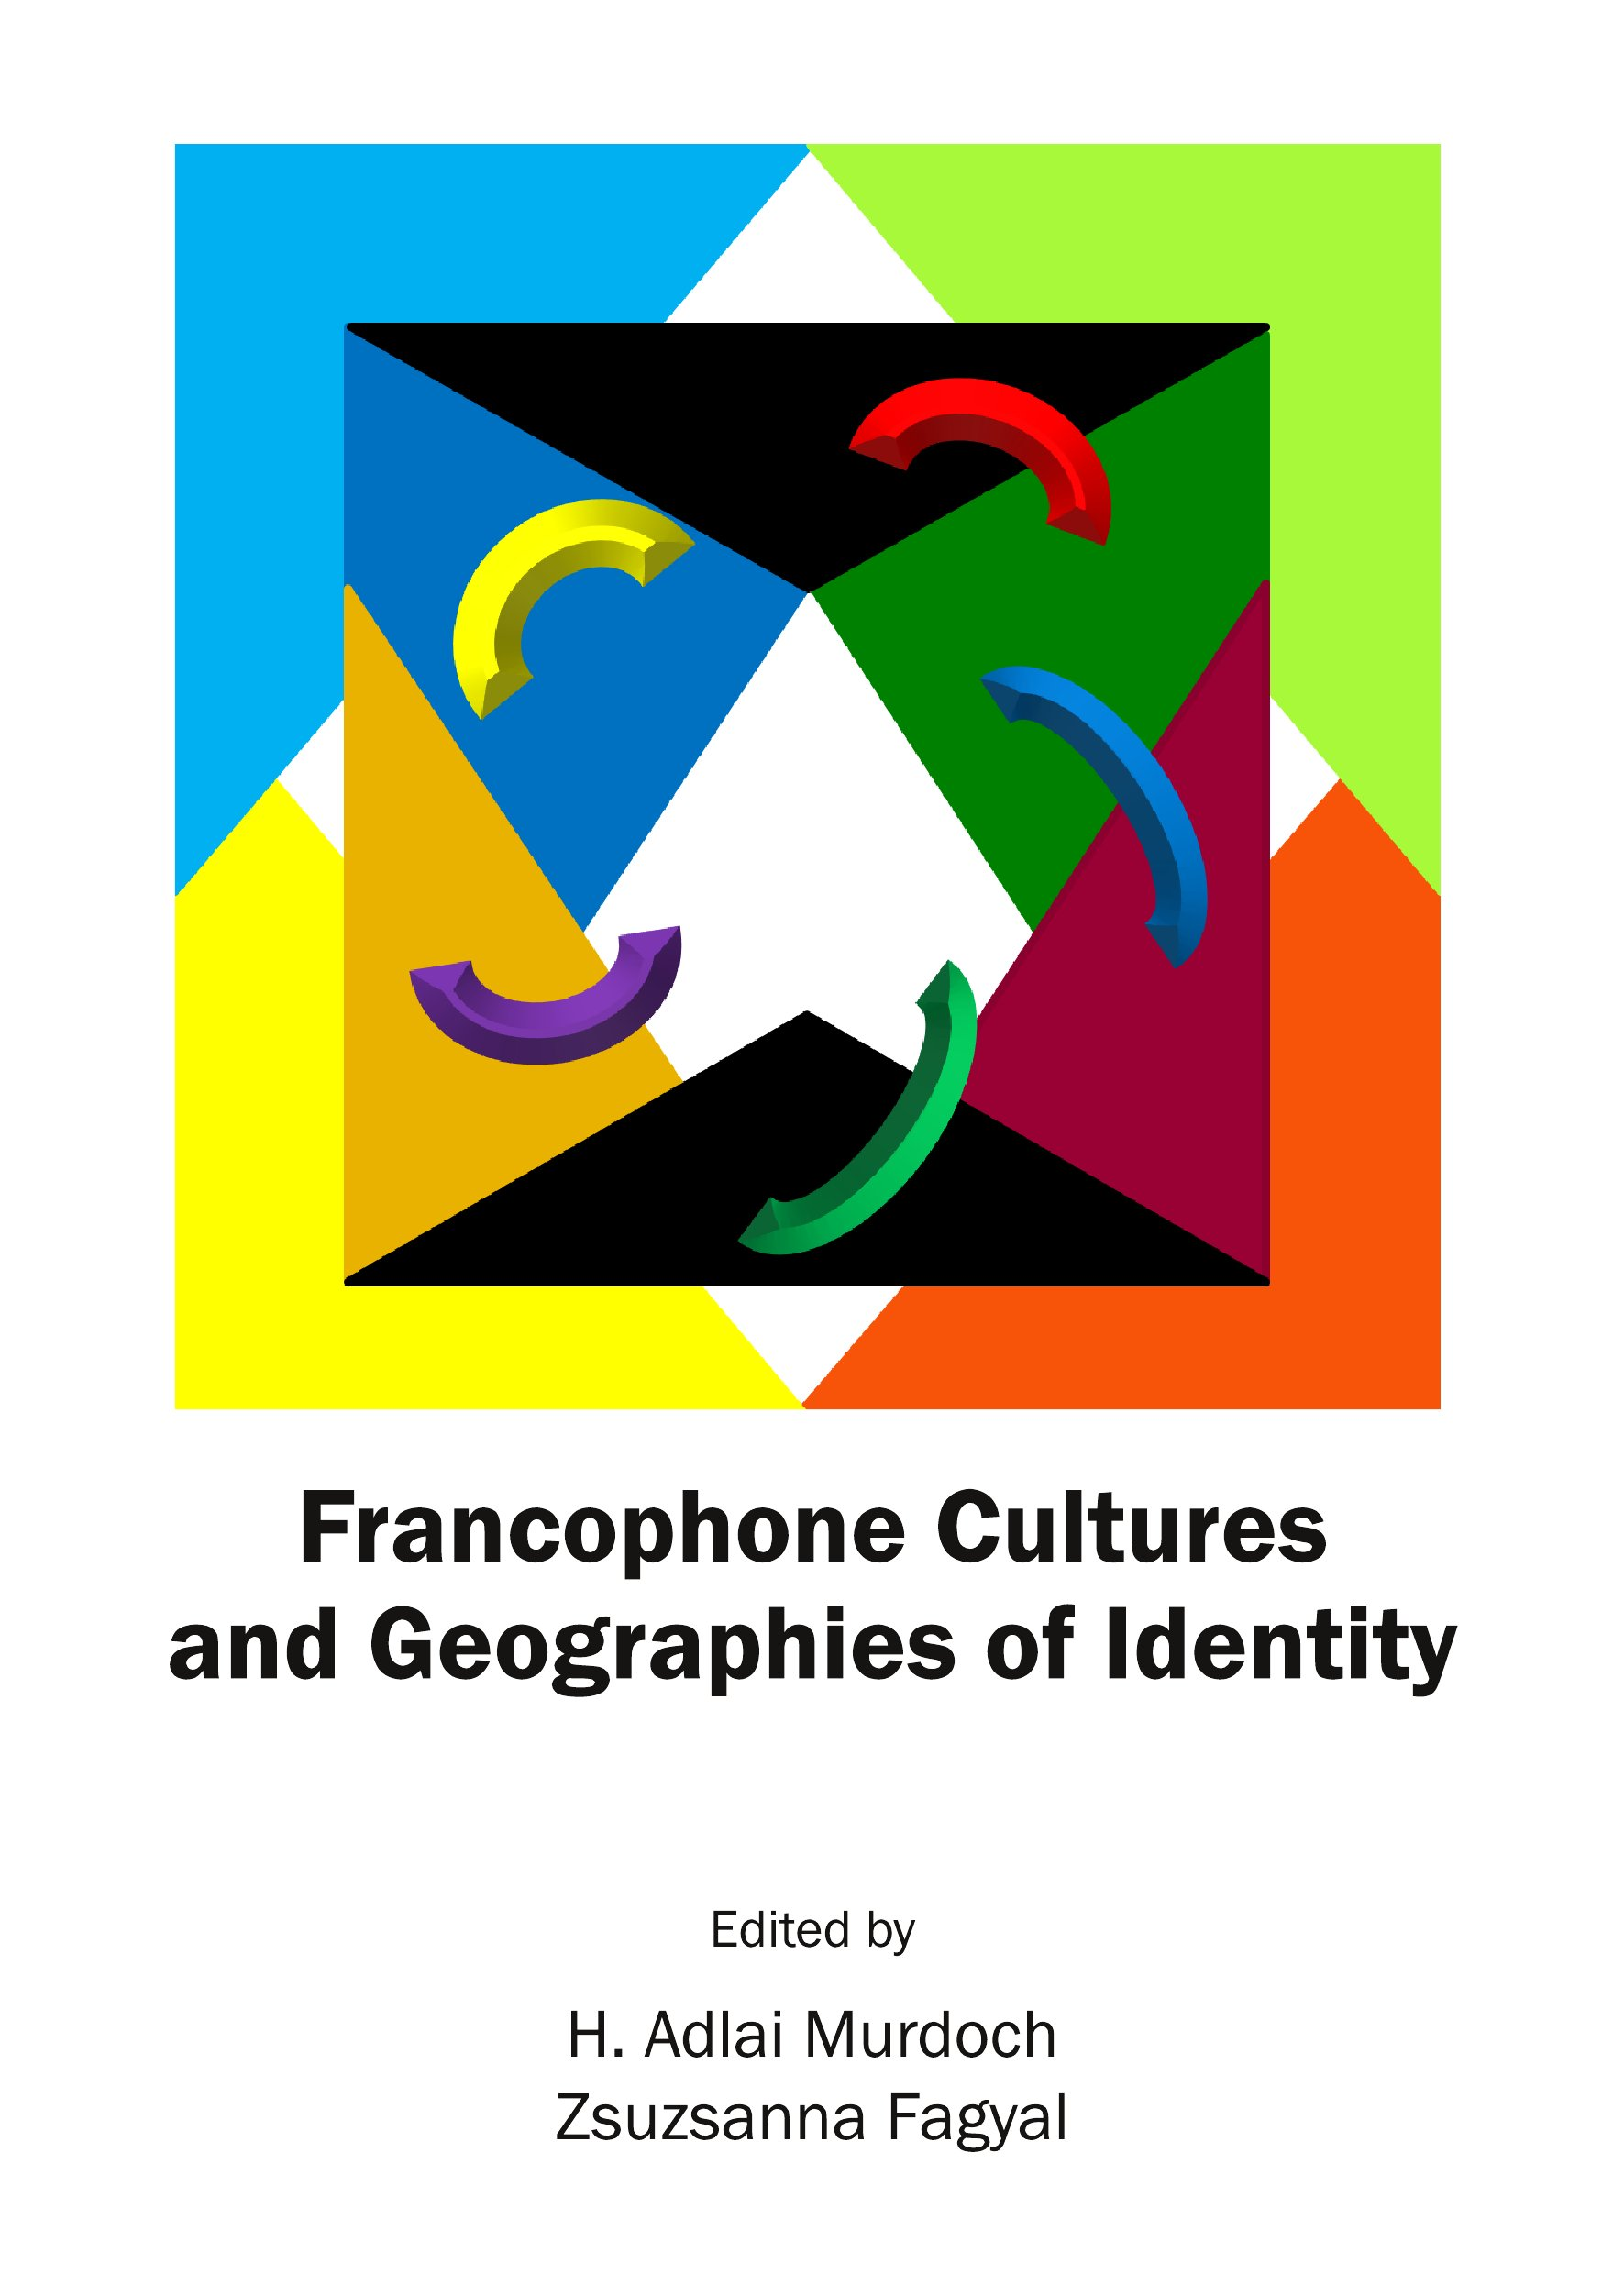 Francophone Cultures and Geographies of Identity